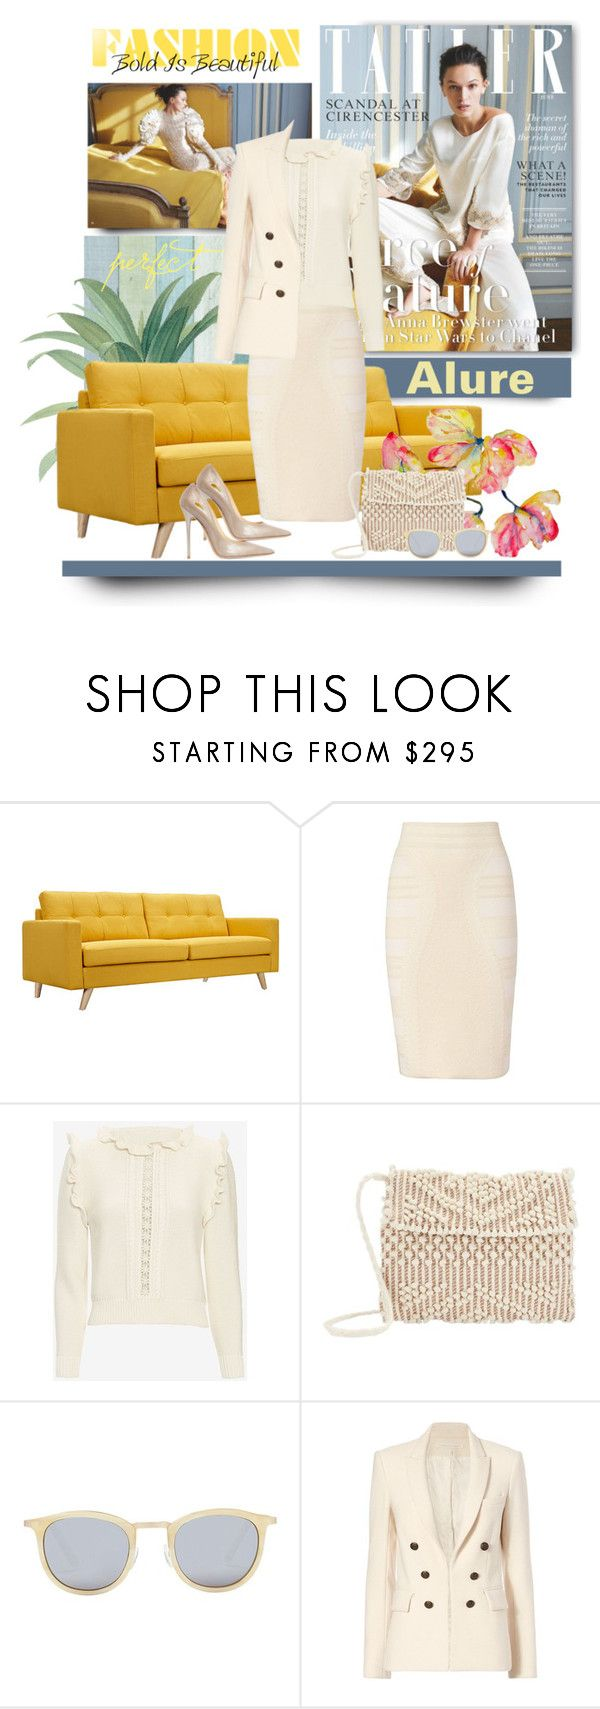 """""""Brights & Off-Whites"""" by jacque-reid ❤ liked on Polyvore featuring Dot & Bo, Alexander McQueen, STELLA McCARTNEY, Antonello, Smoke & Mirrors, Veronica Beard and Jimmy Choo"""